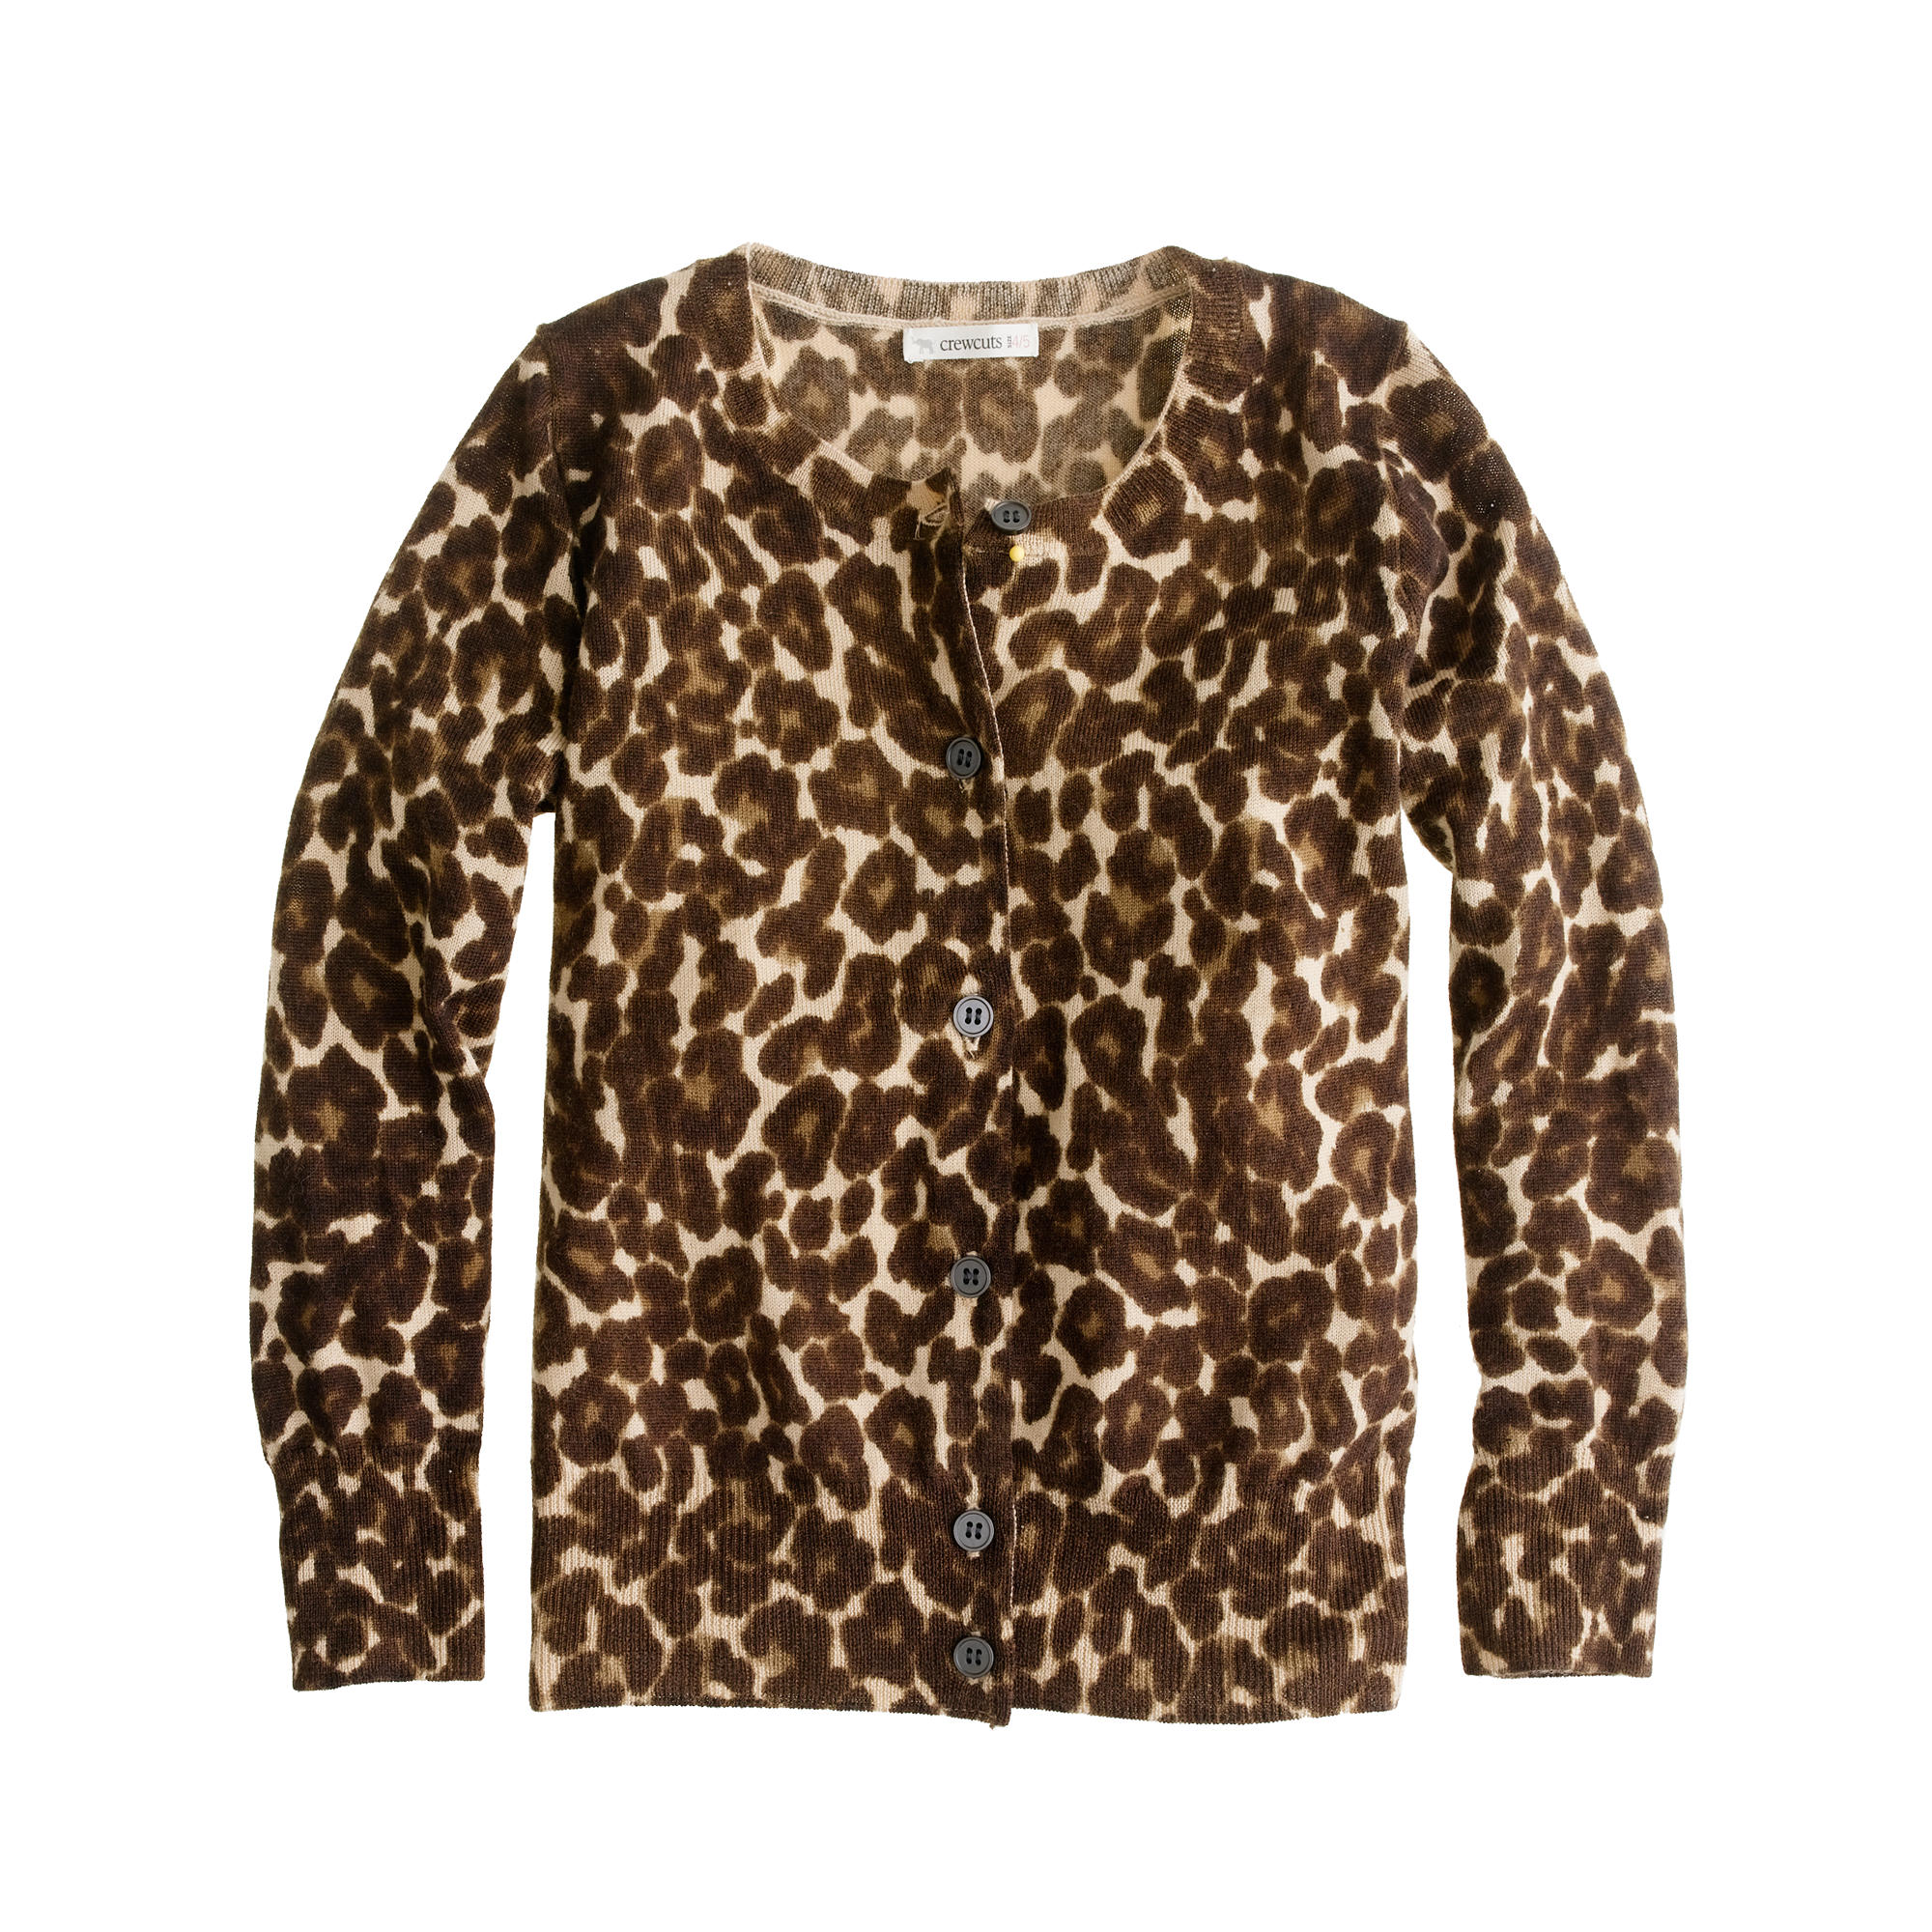 Girls' merino leopard cardigan :